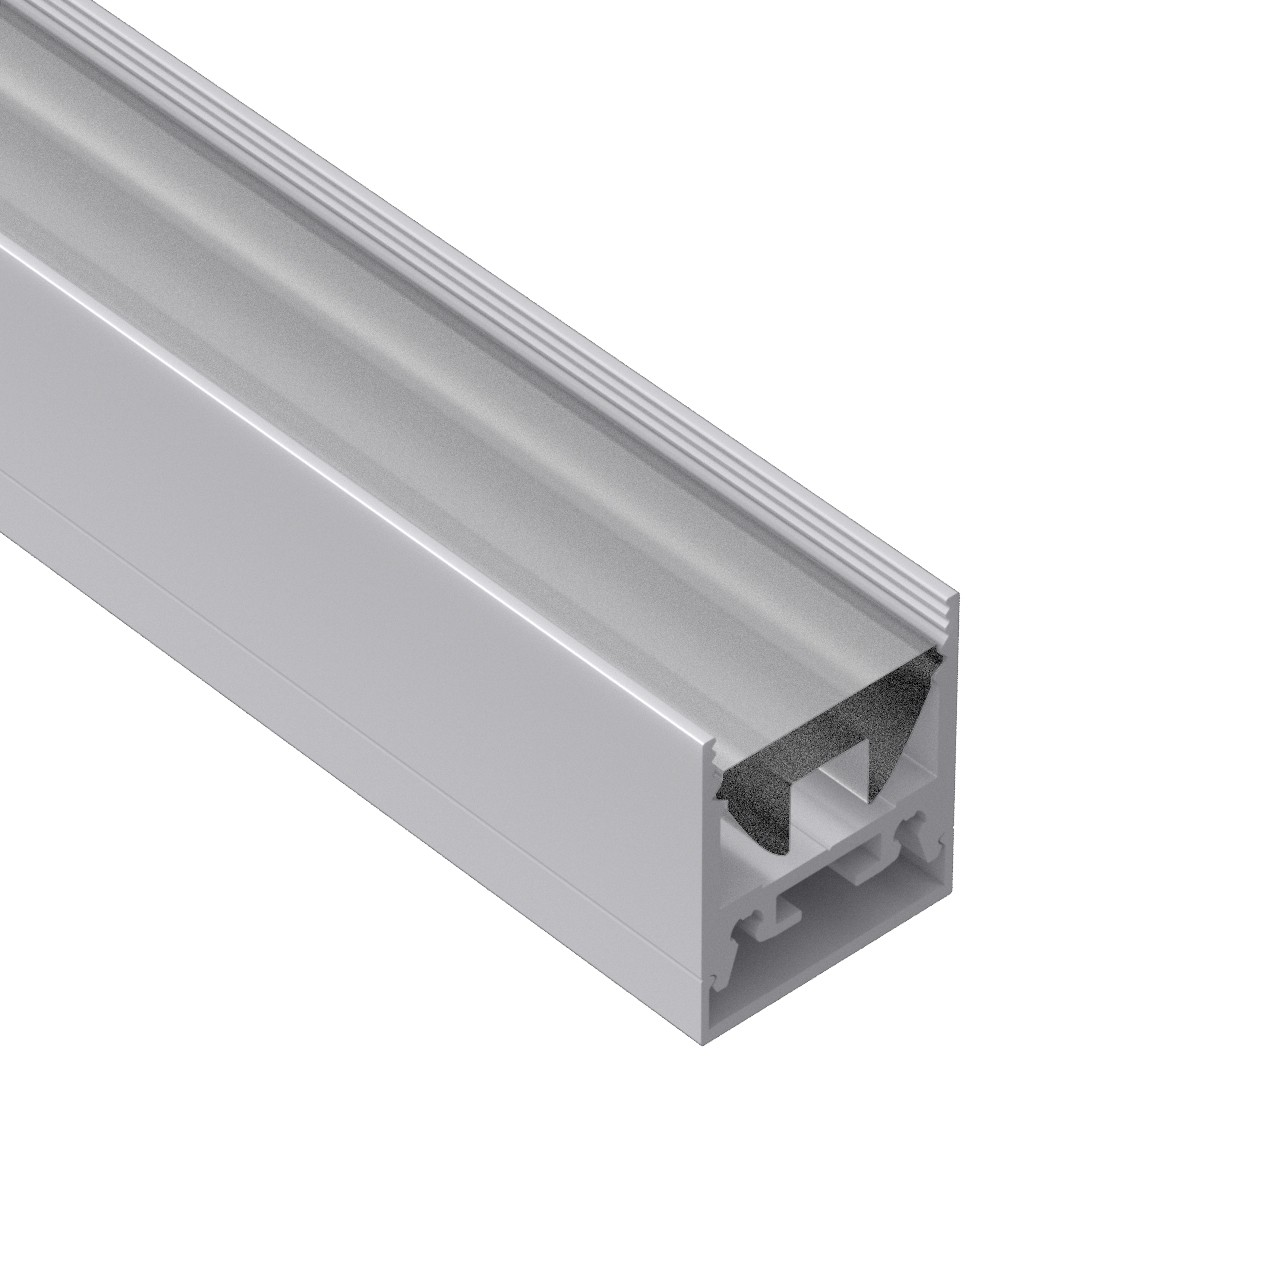 AT12N-3 Dybere overflade firkantet ledprofil 19,7x22,6 mm